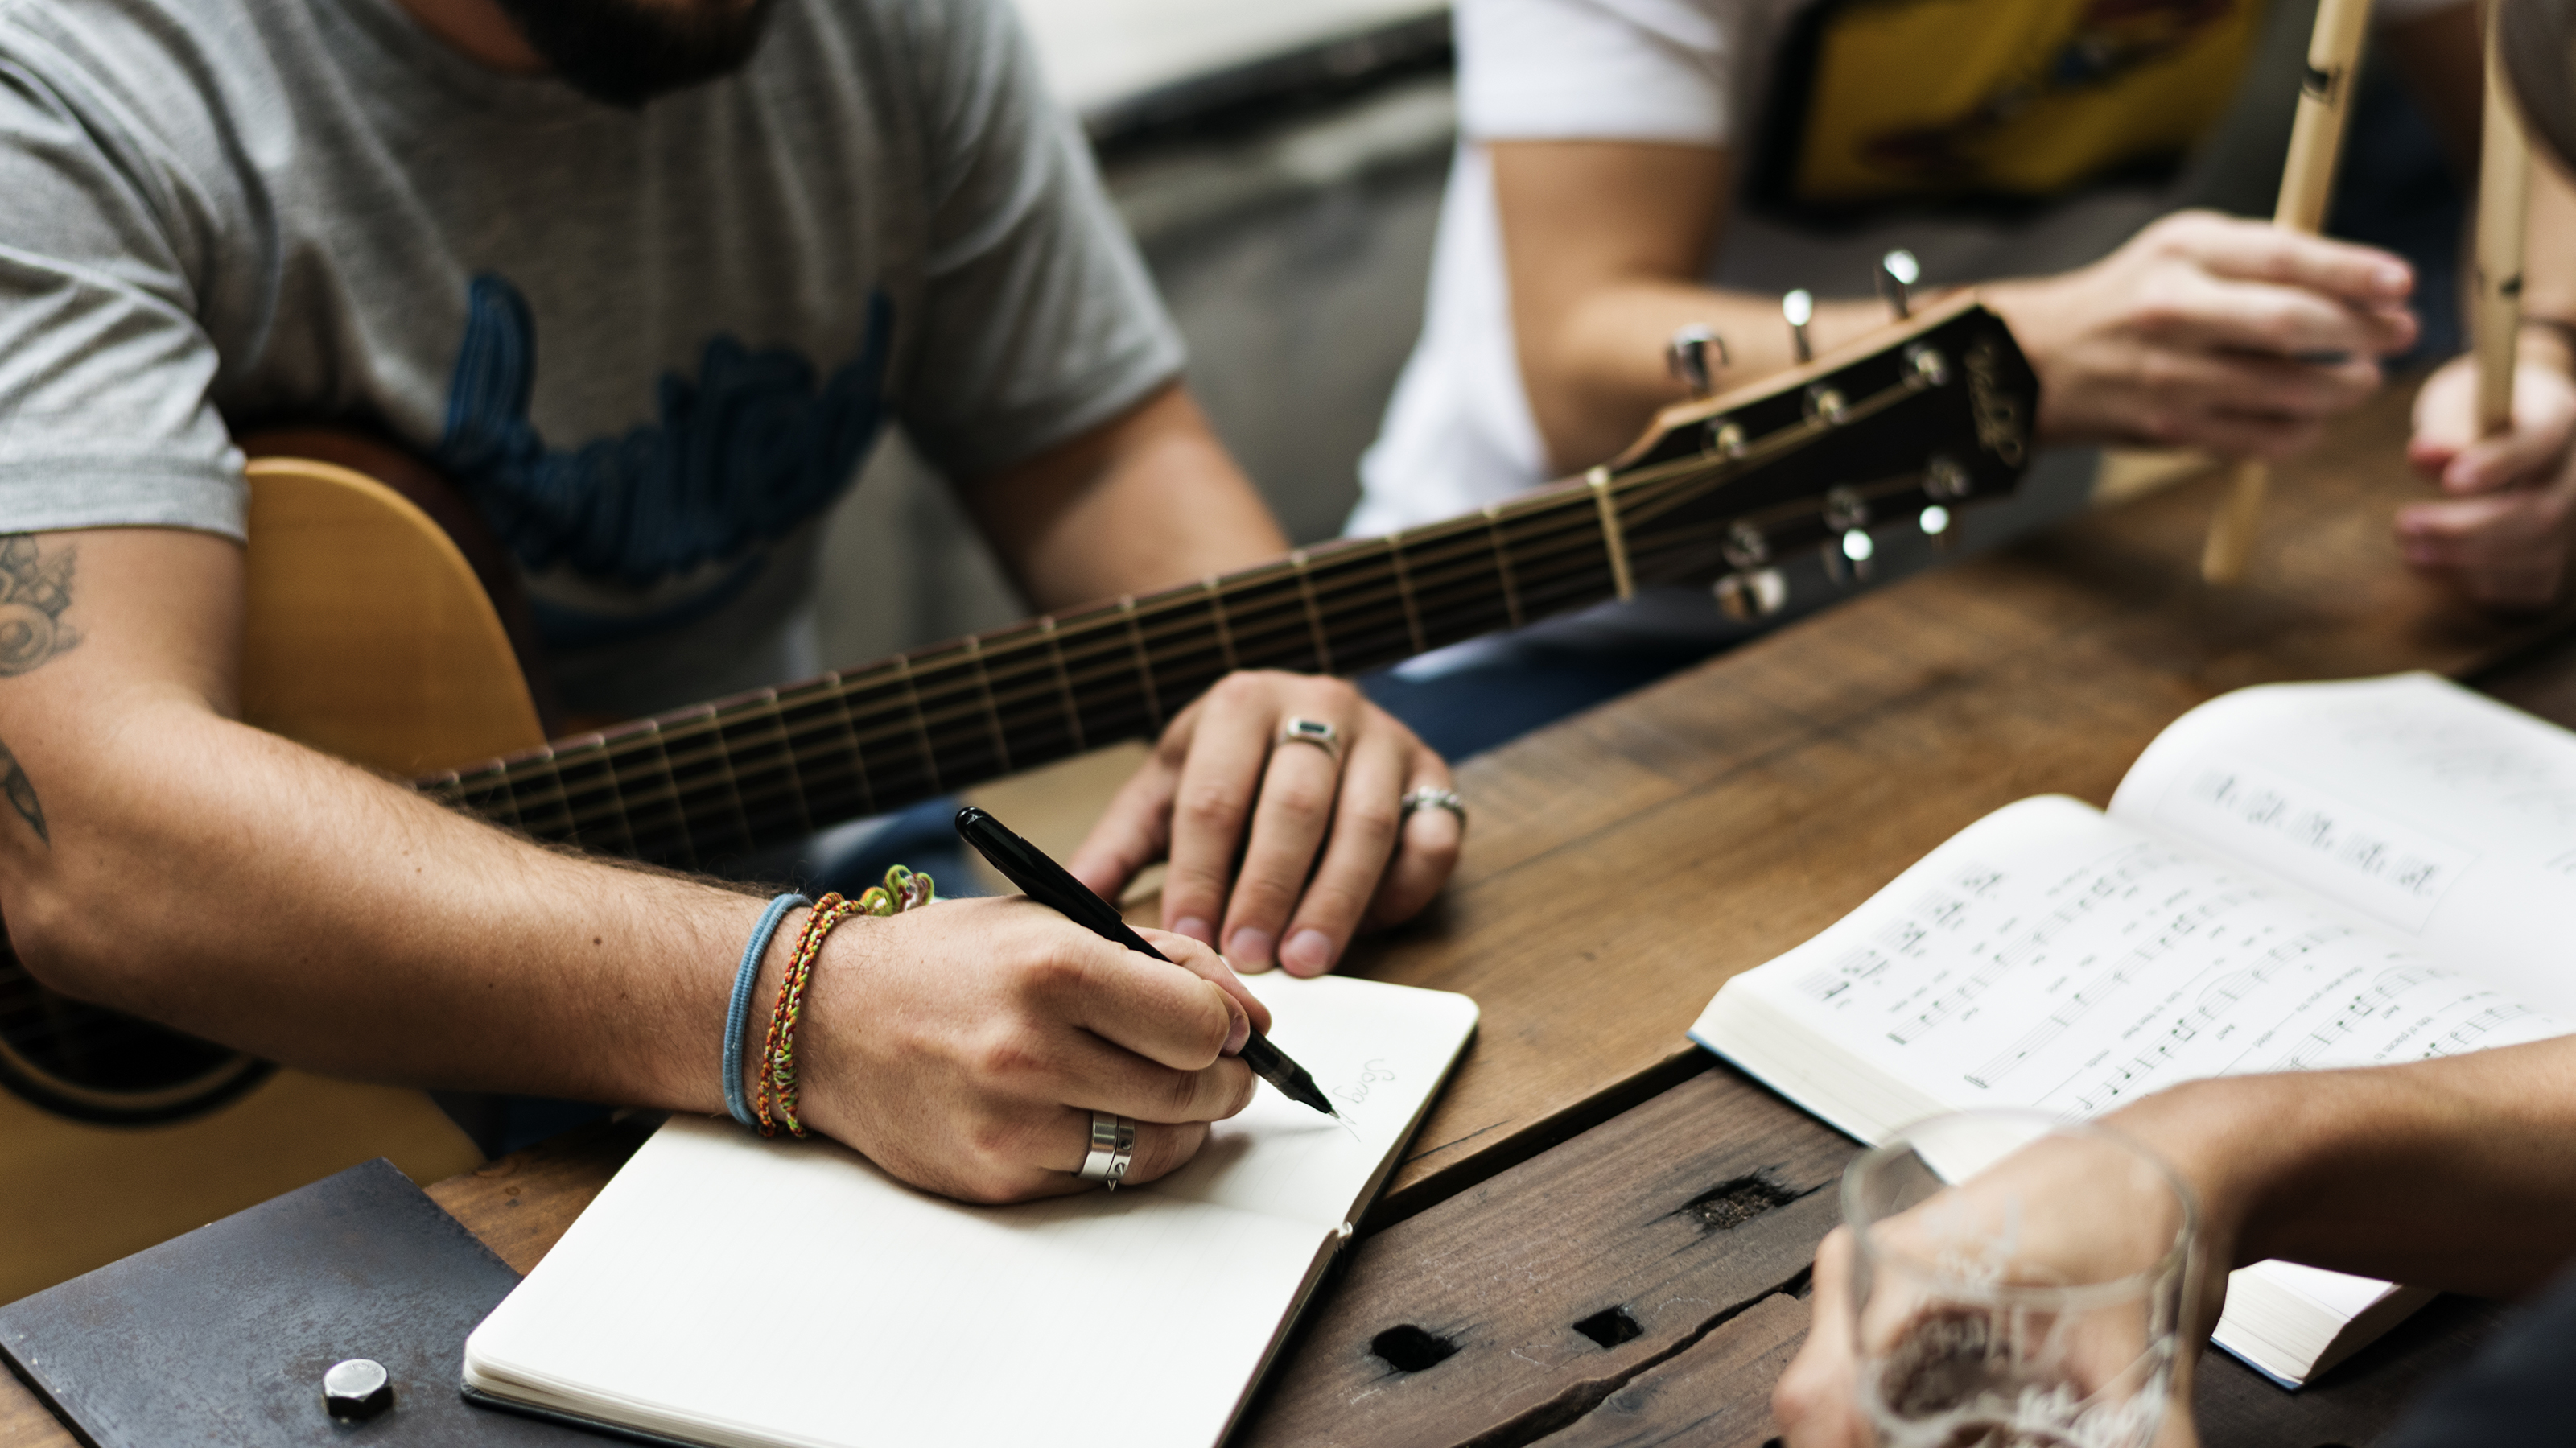 songwriting song write guitar compose improvising pros improvisation without jamming instrument way